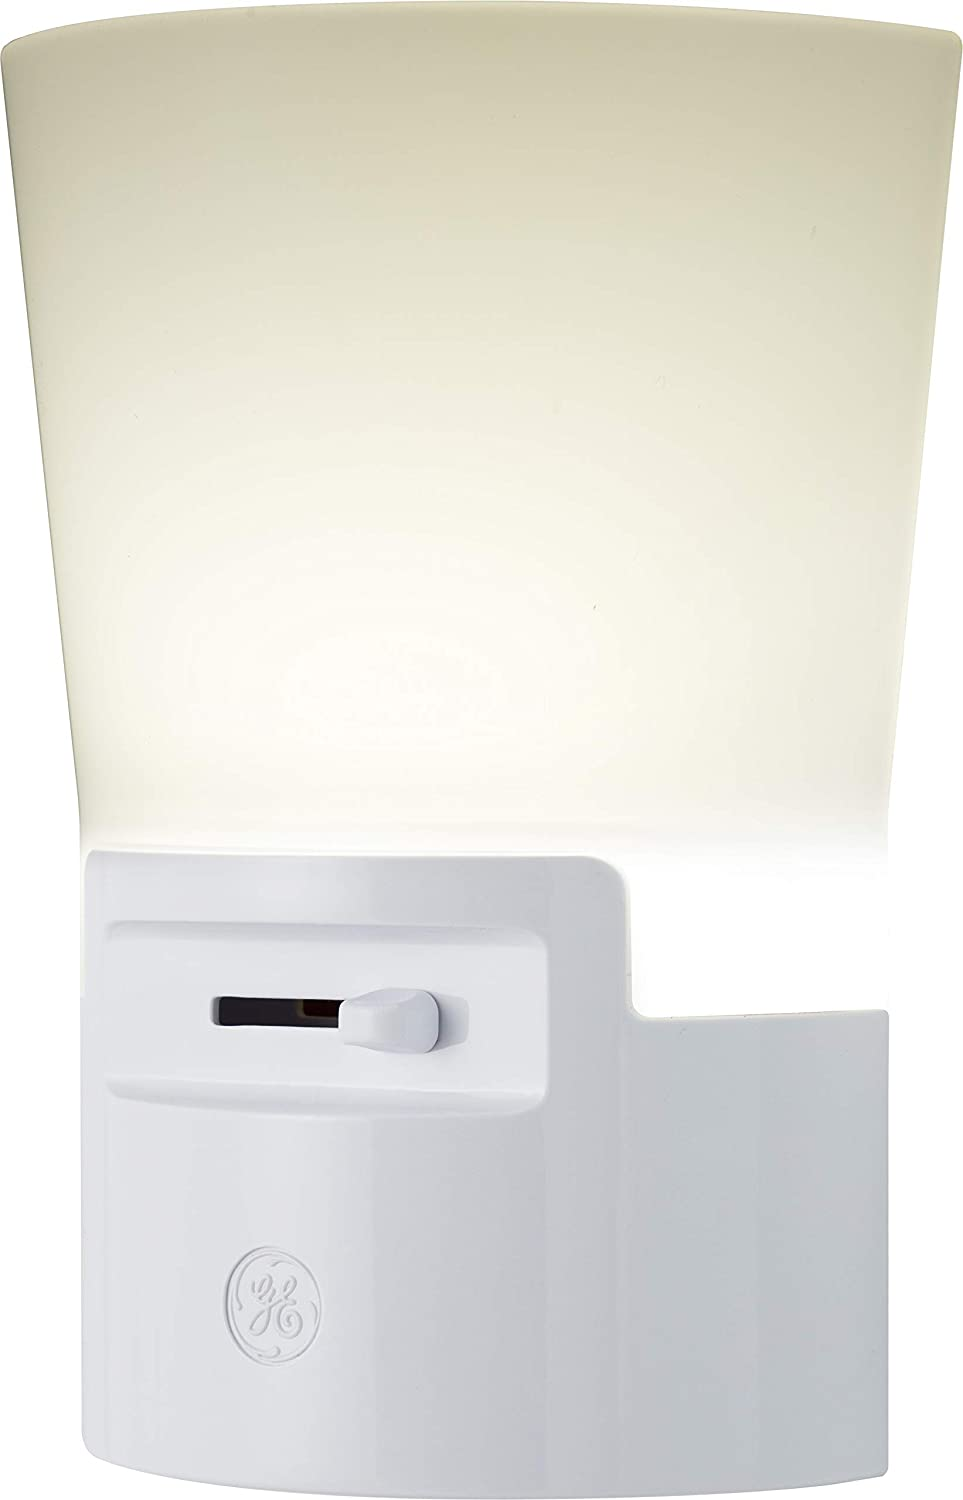 GE Ultrabrite Dimmable Sconce LED Night Light GEPlug-in, Energy Efficient, Dusk-to-Dawn Sensor, Adjustable Brightness, Ideal for Bedroom, Bathroom, Hallway, Nursery, White, 45123, 1 Pack,